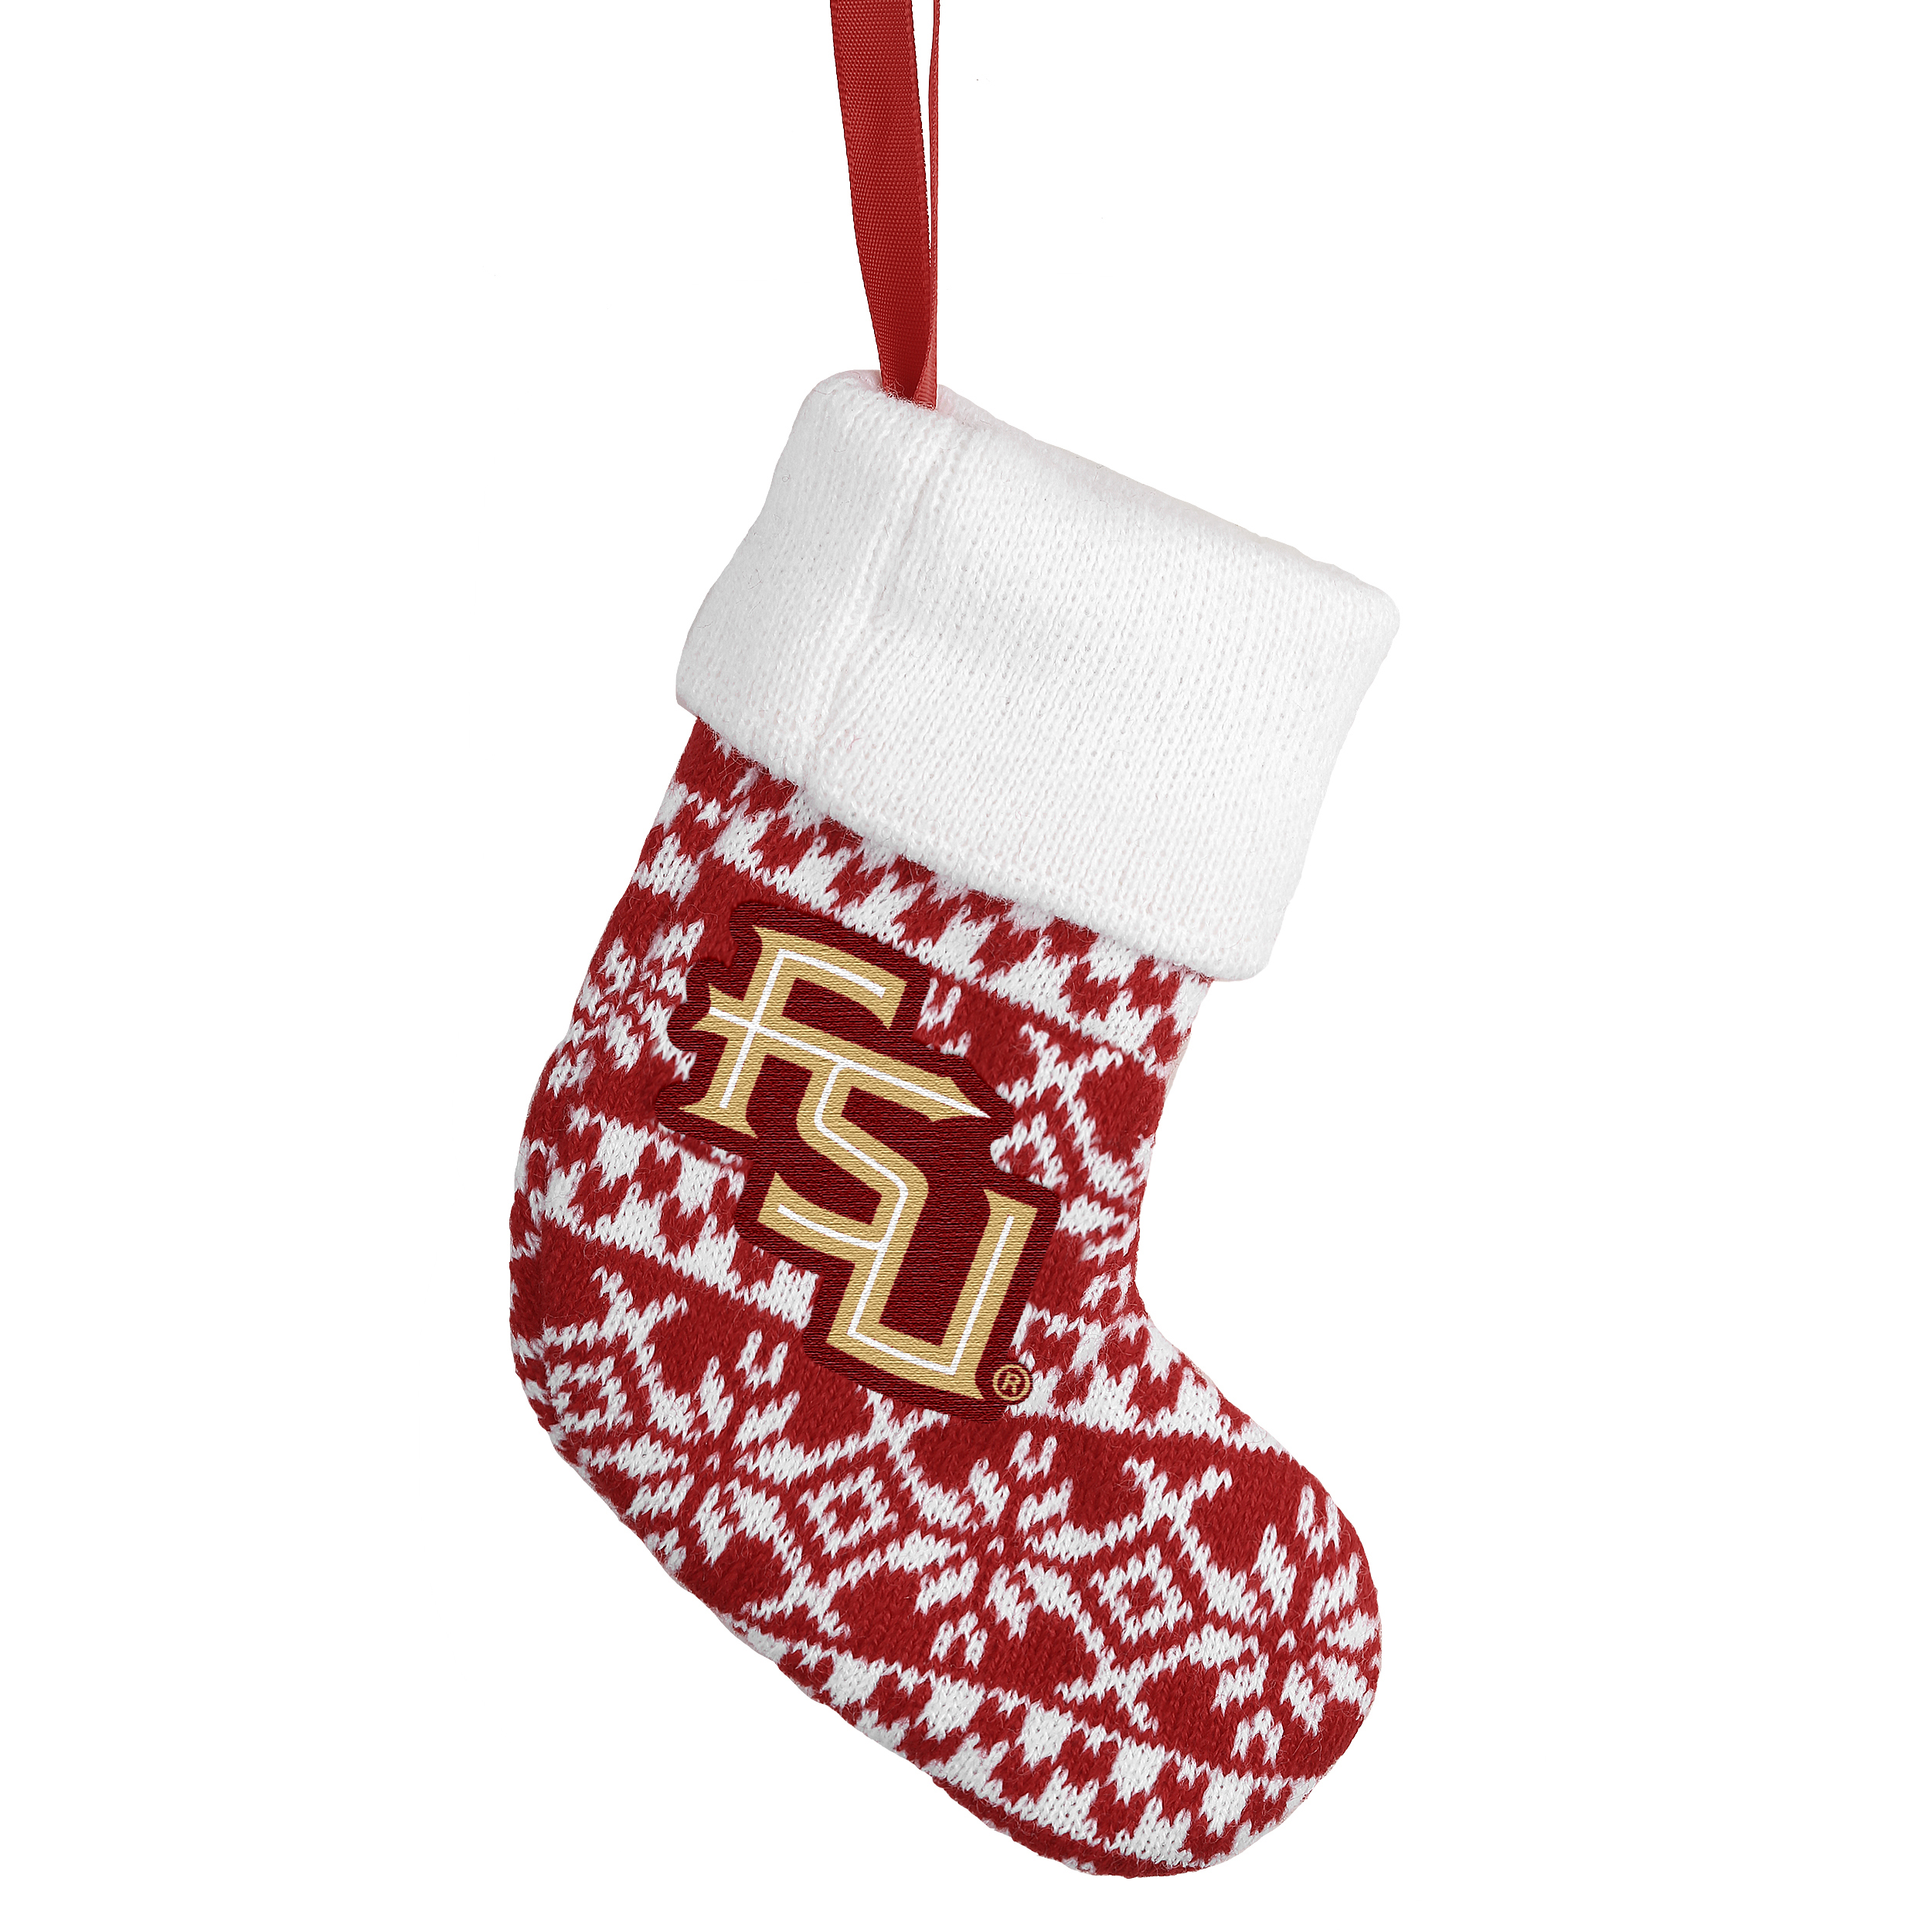 Florida State Seminoles Official NCAA Holiday Knit Stocking Christmas Ornament Gift Card Holder by Forever Collectibles 491946